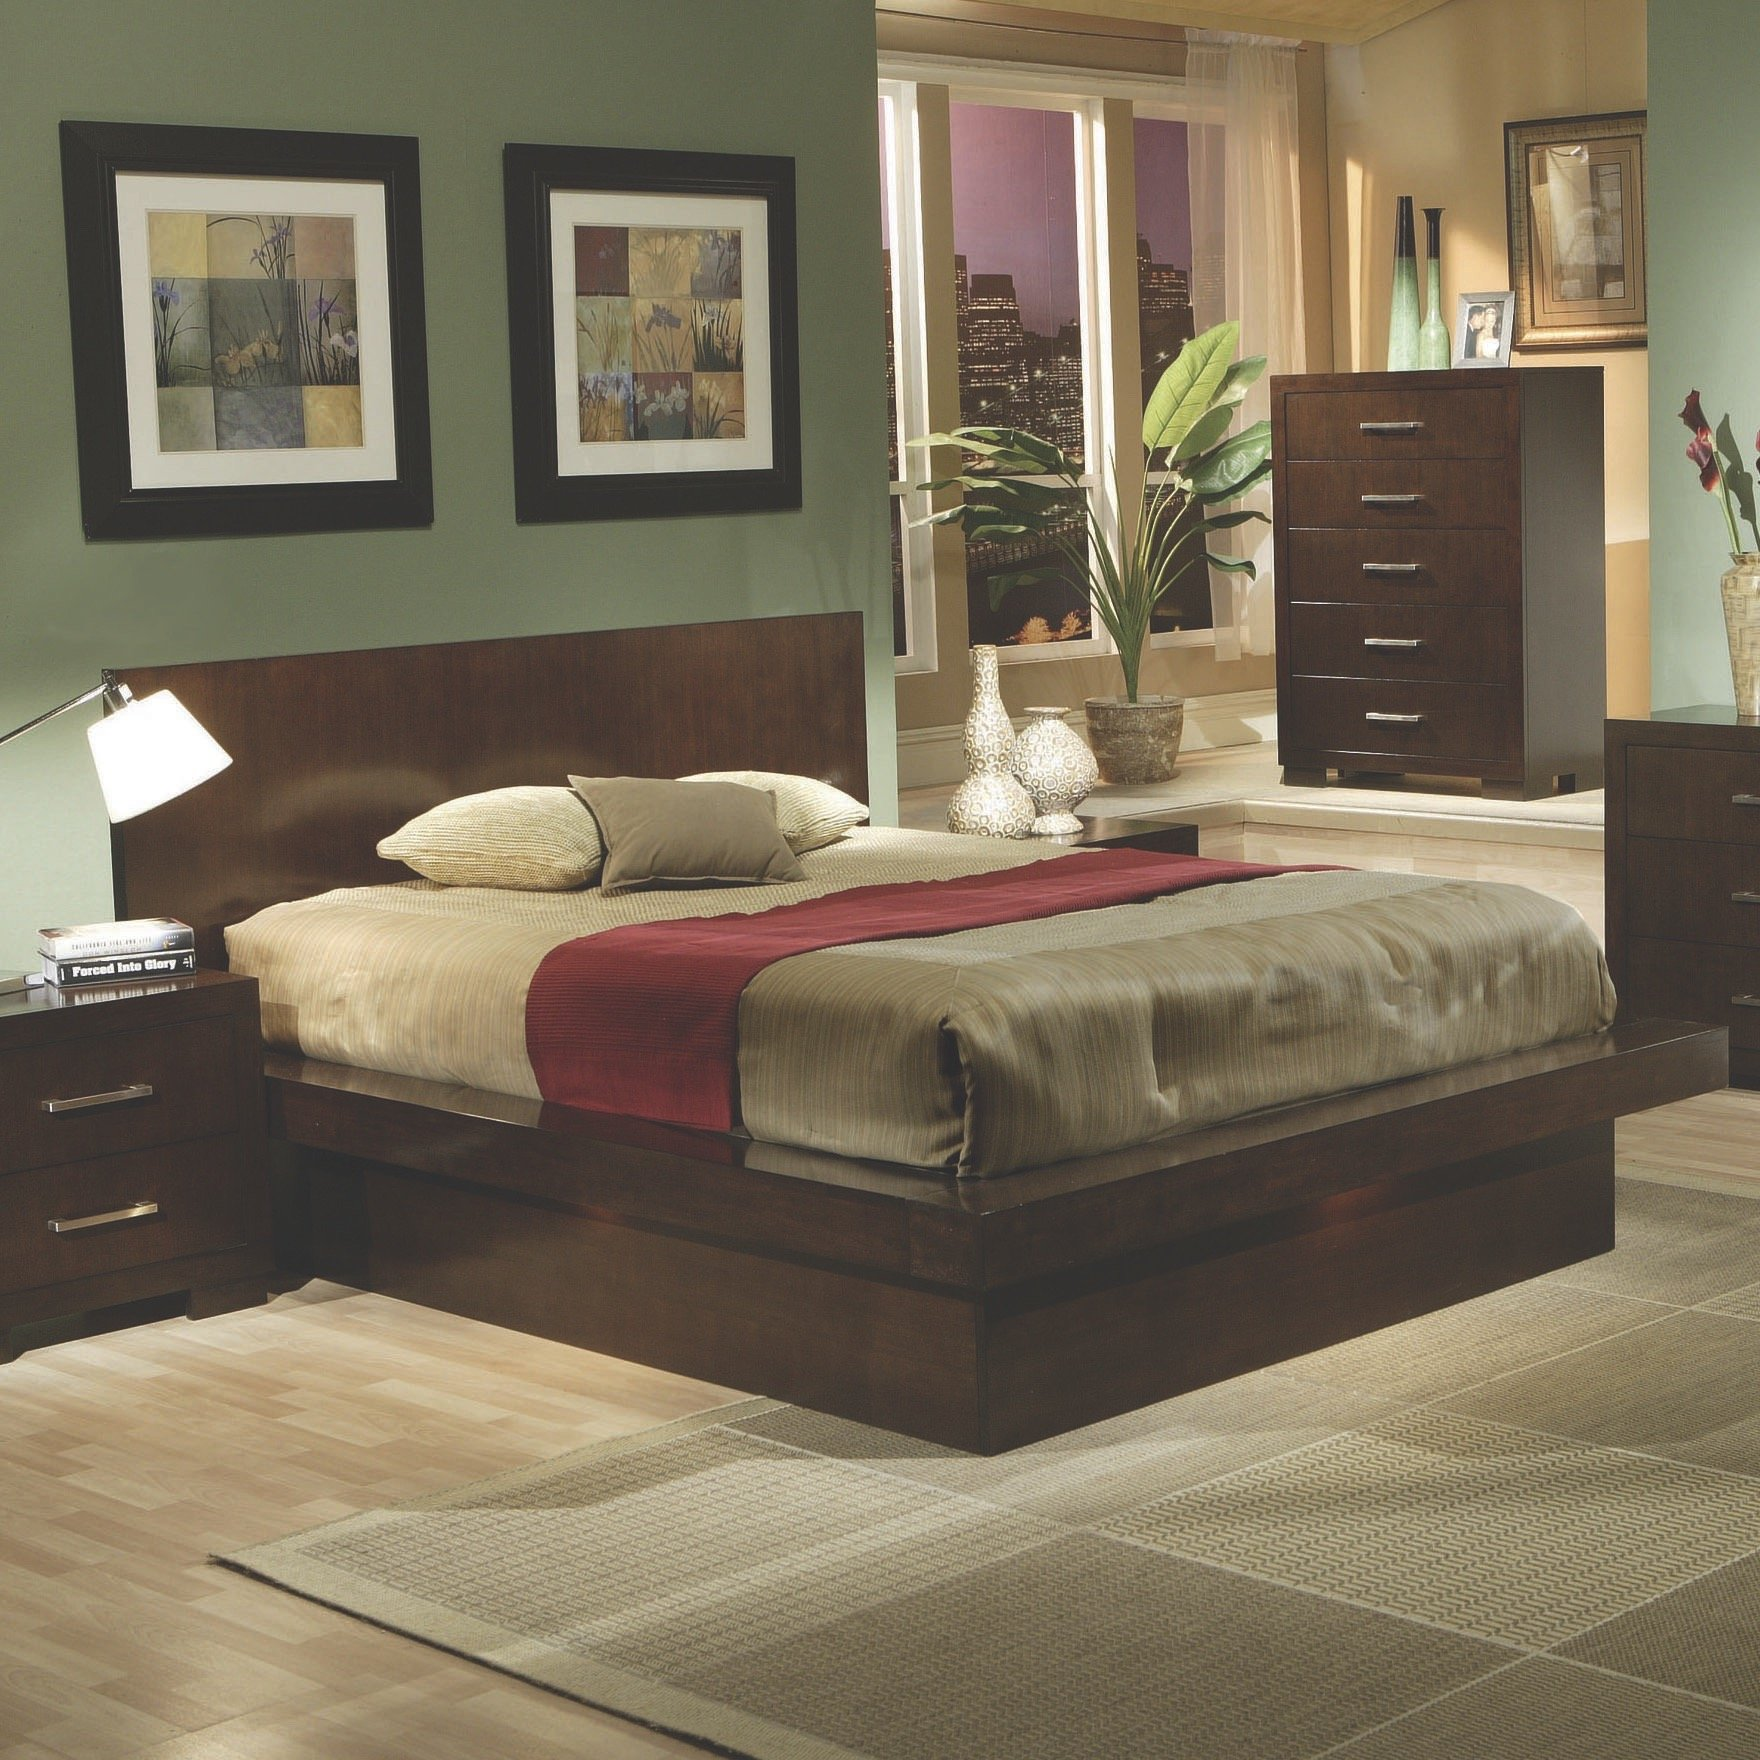 Coaster Home Furnishings 200719Q Contemporary Queen Bed, Cappuccino